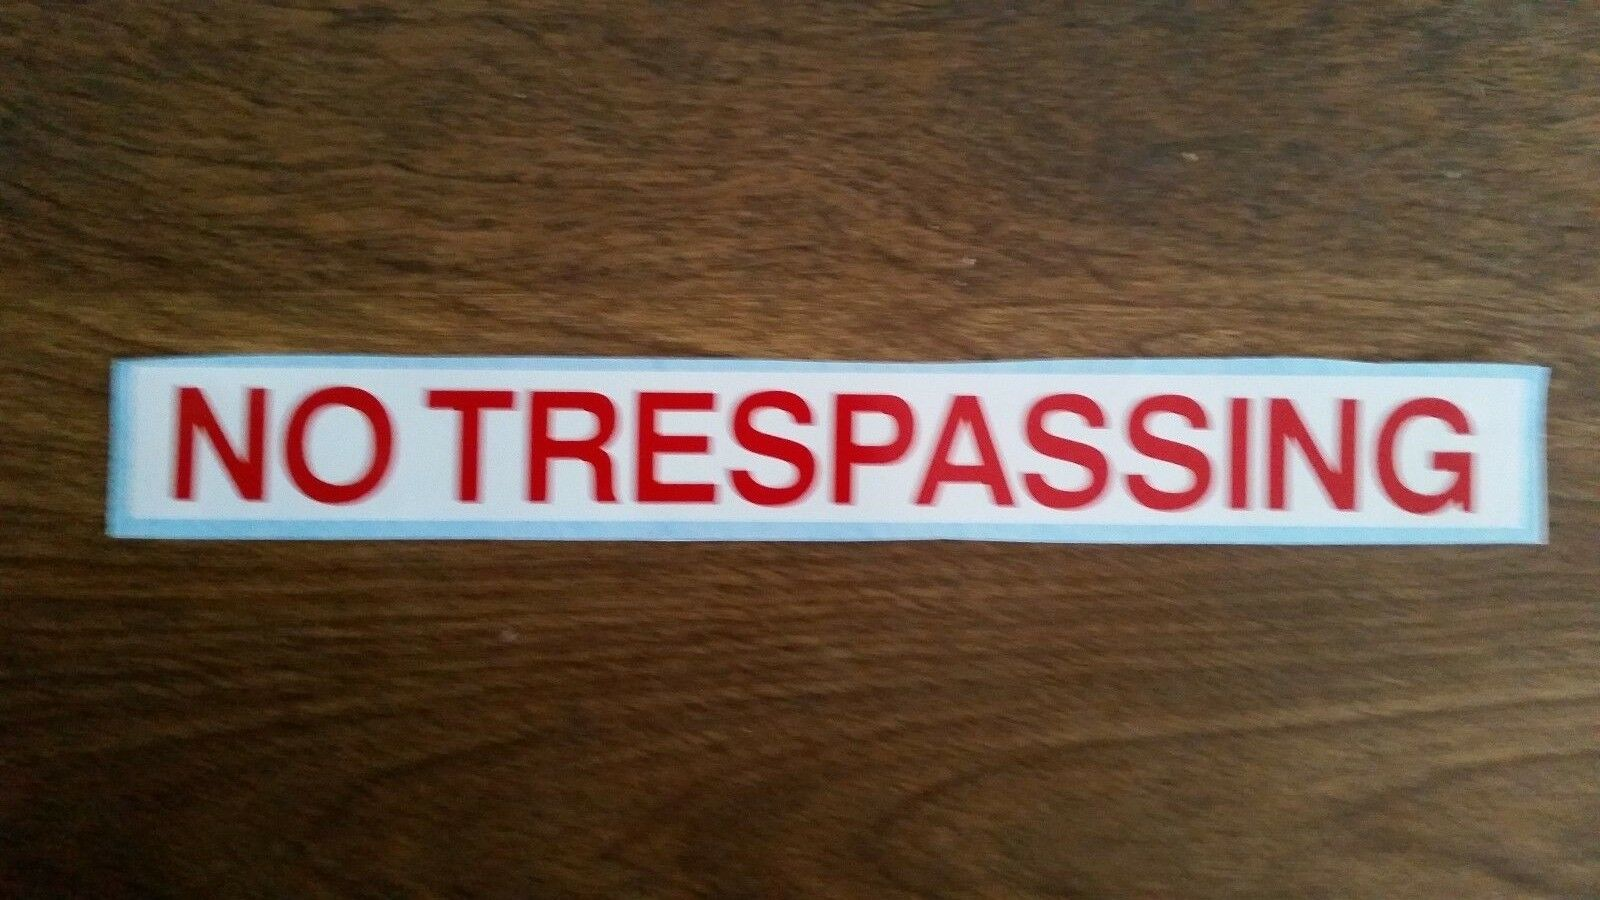 NO TRESPASSING DECAL $2.89 FREE SHIPPING! 1x9 Buy one get one FREE